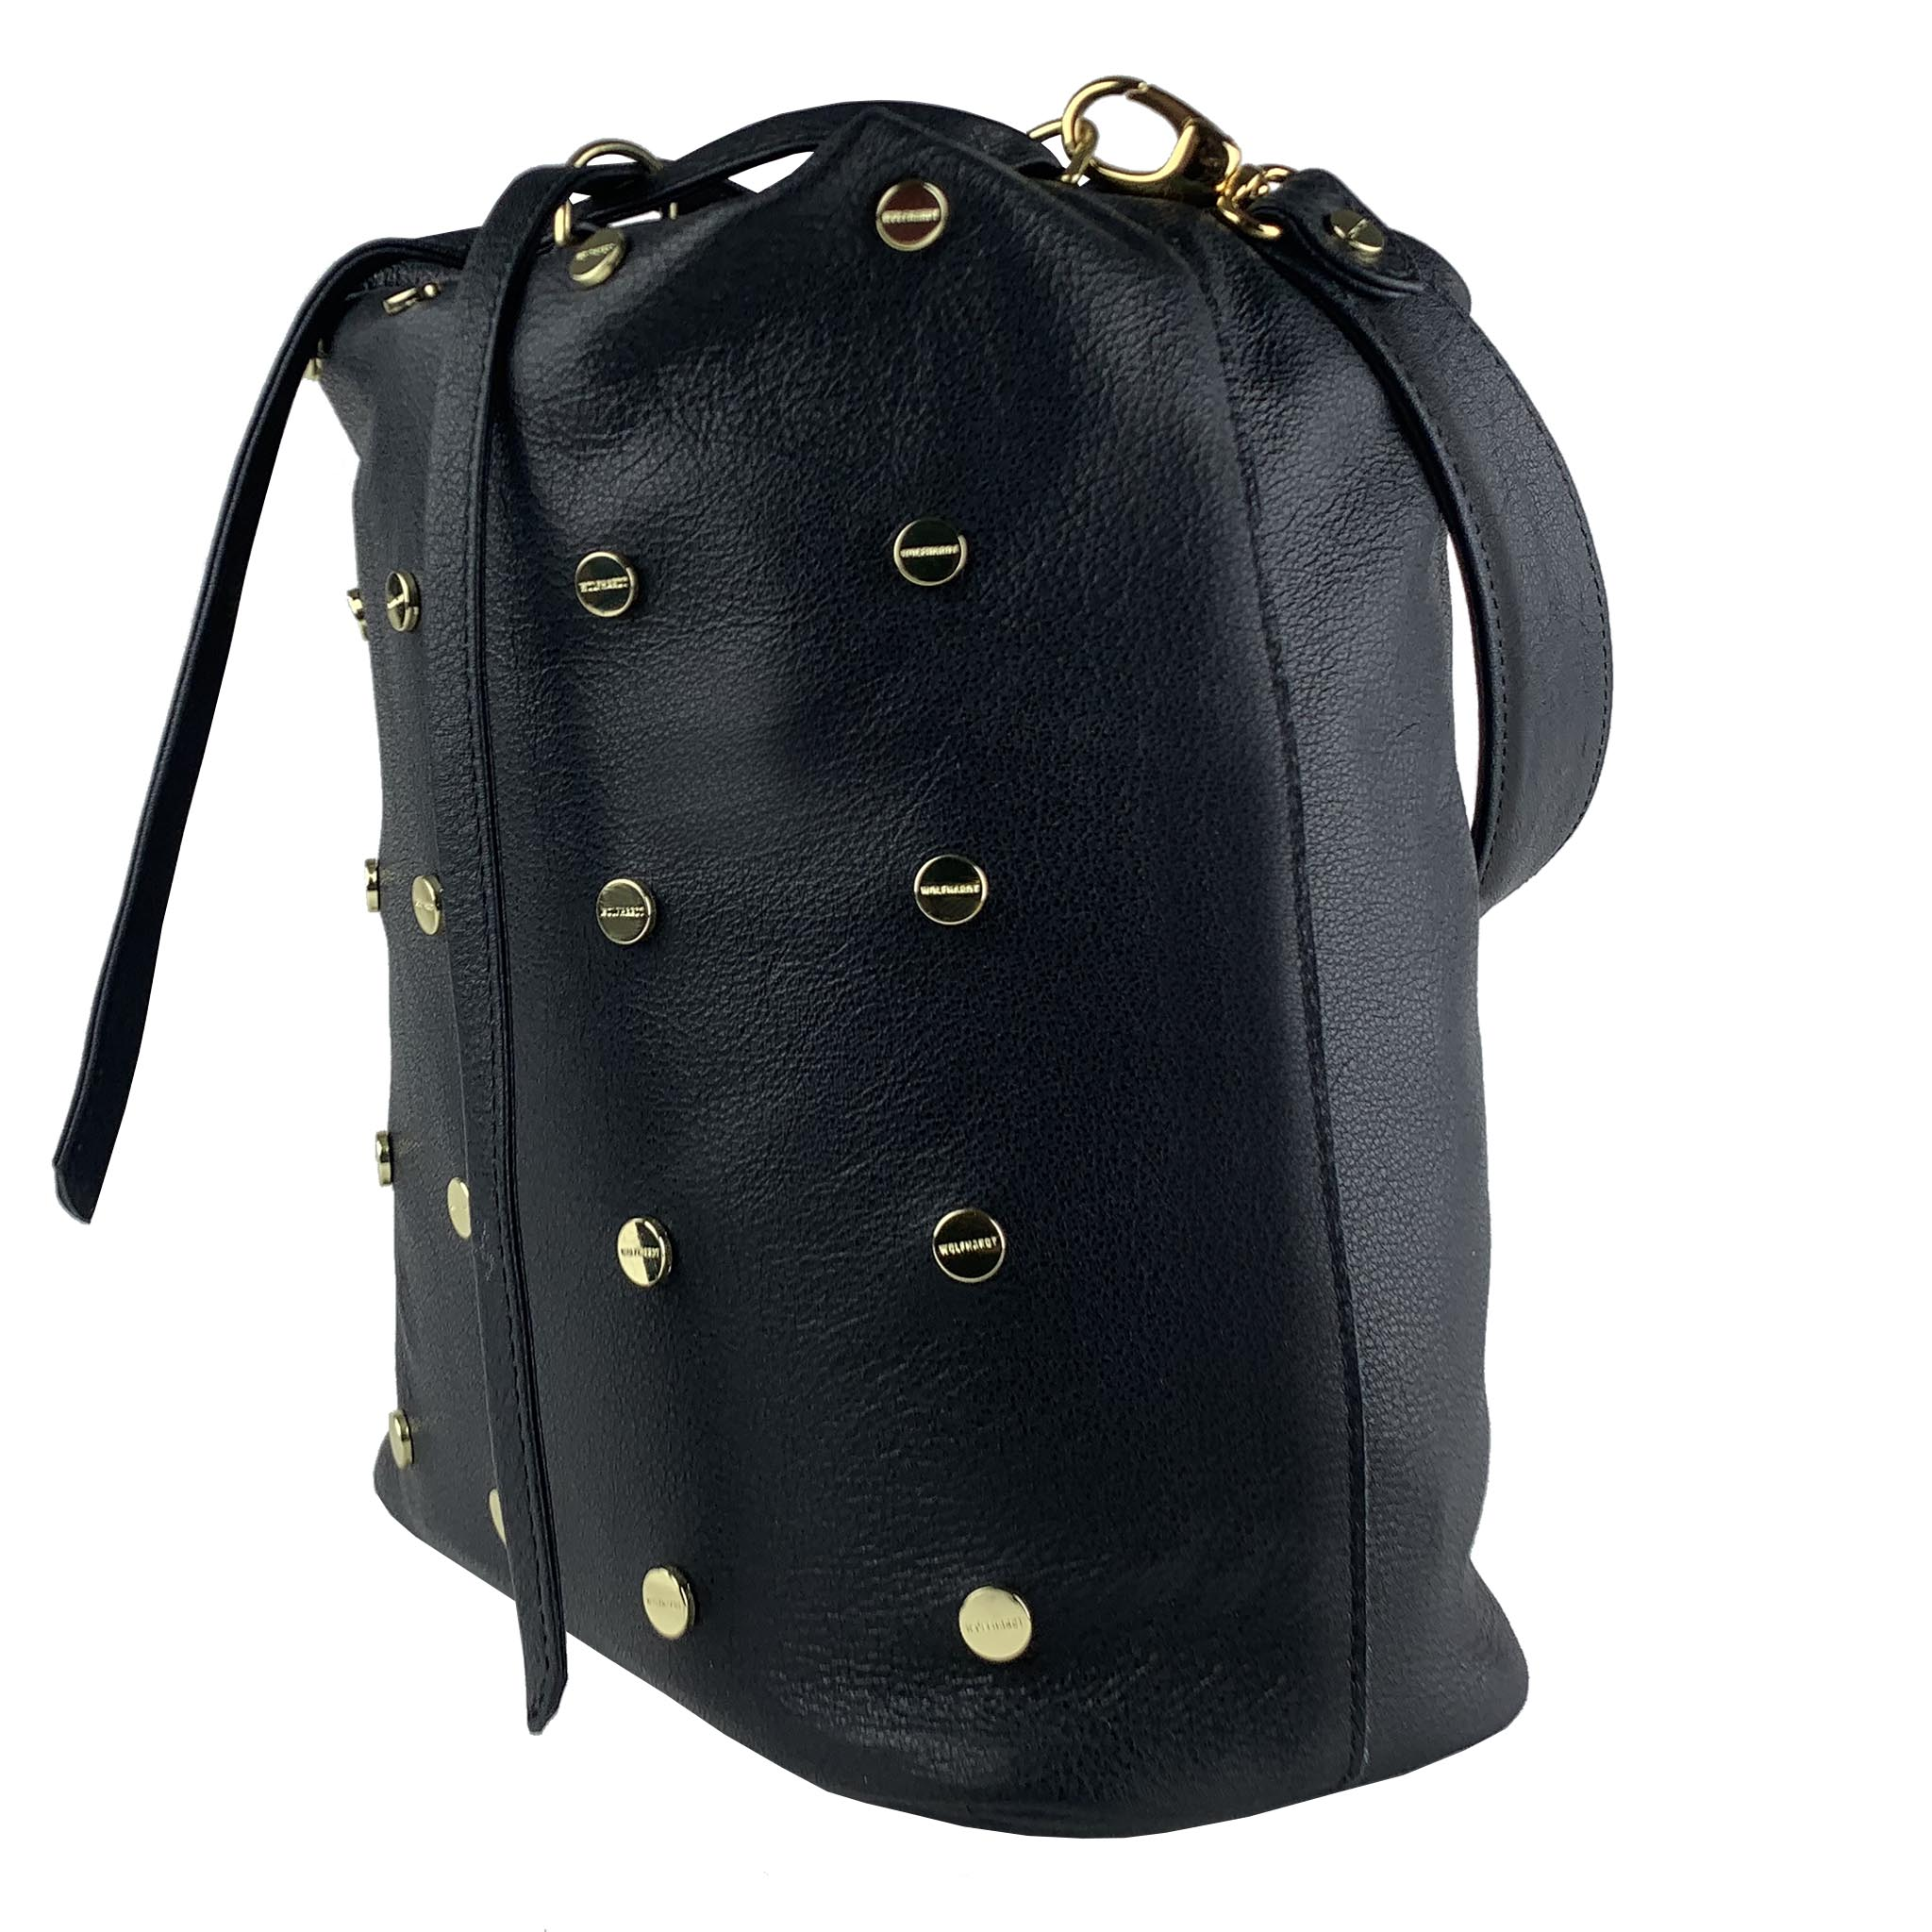 BLACK LEATHER WOMEN'S  STUDDED EIMER BUCKET PACK